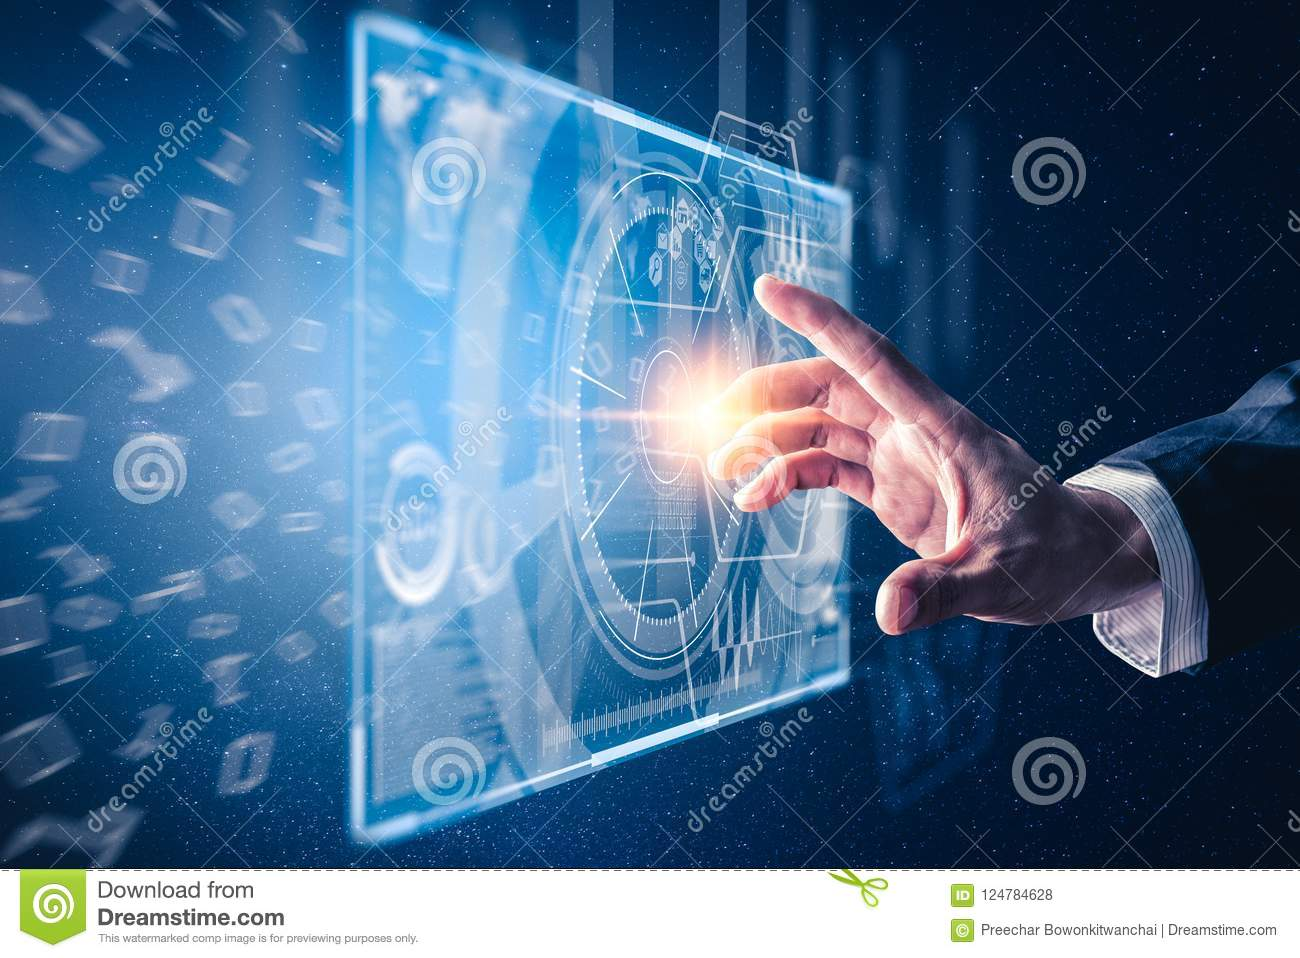 The abstract image of the hand point to the business virtual hologram through the computer screen.